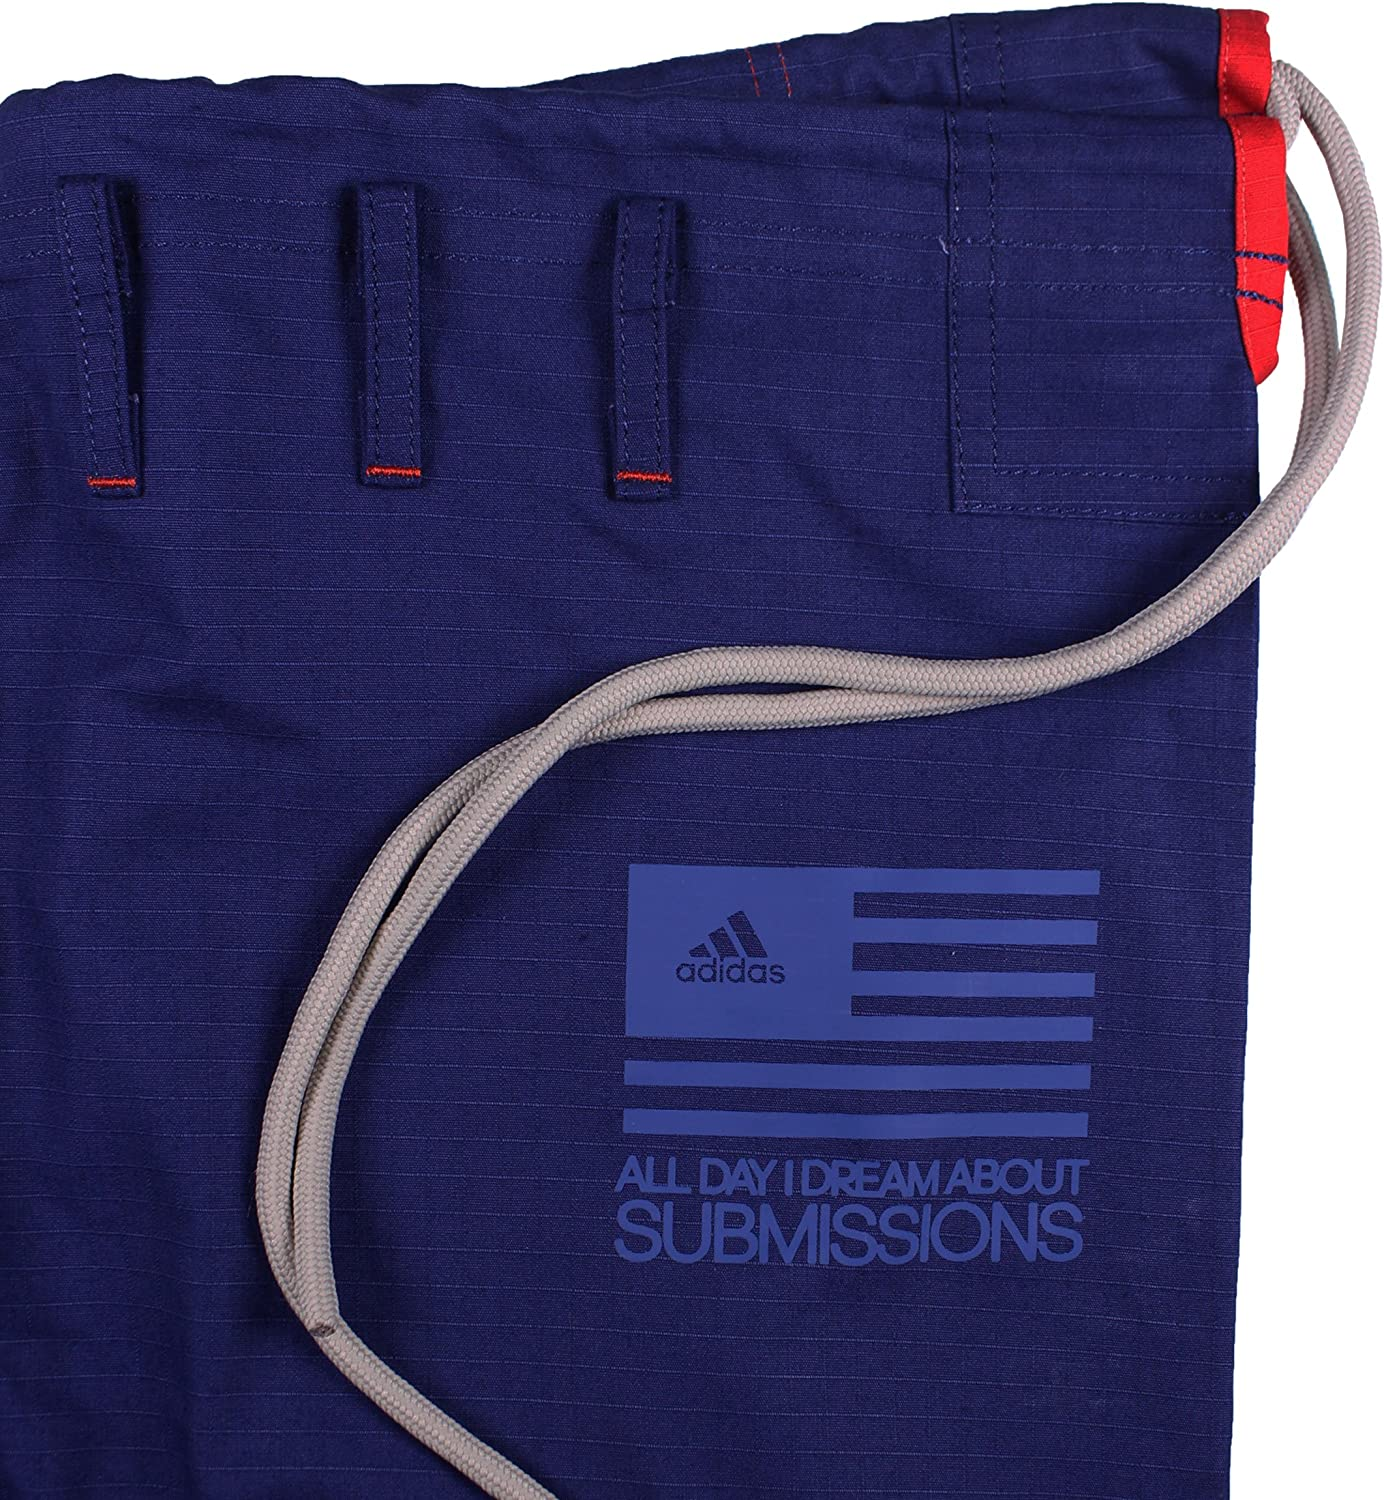 Adidas Stars and Stripes Limited Edition Pearl Weave Gi White//Navy